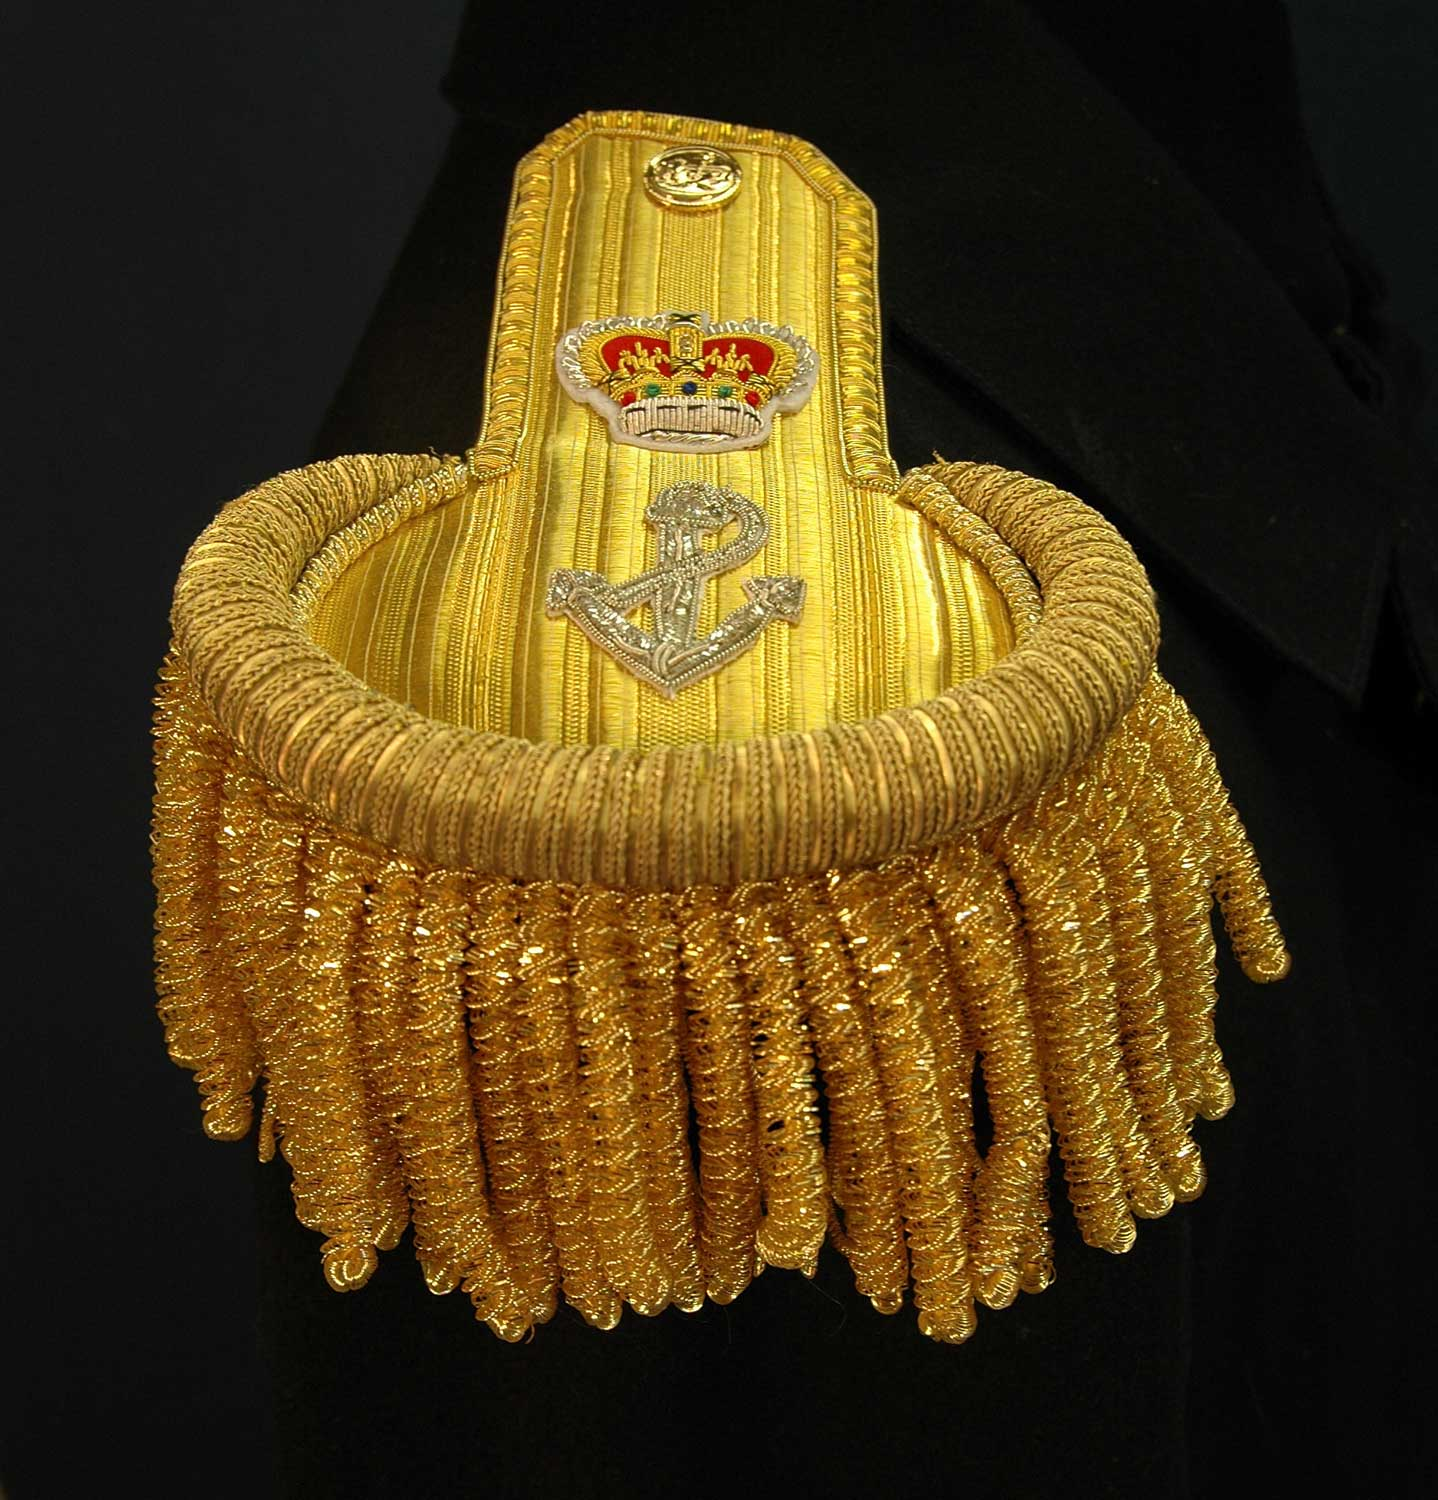 British, 1843 Royal Navy Captain Epaulette